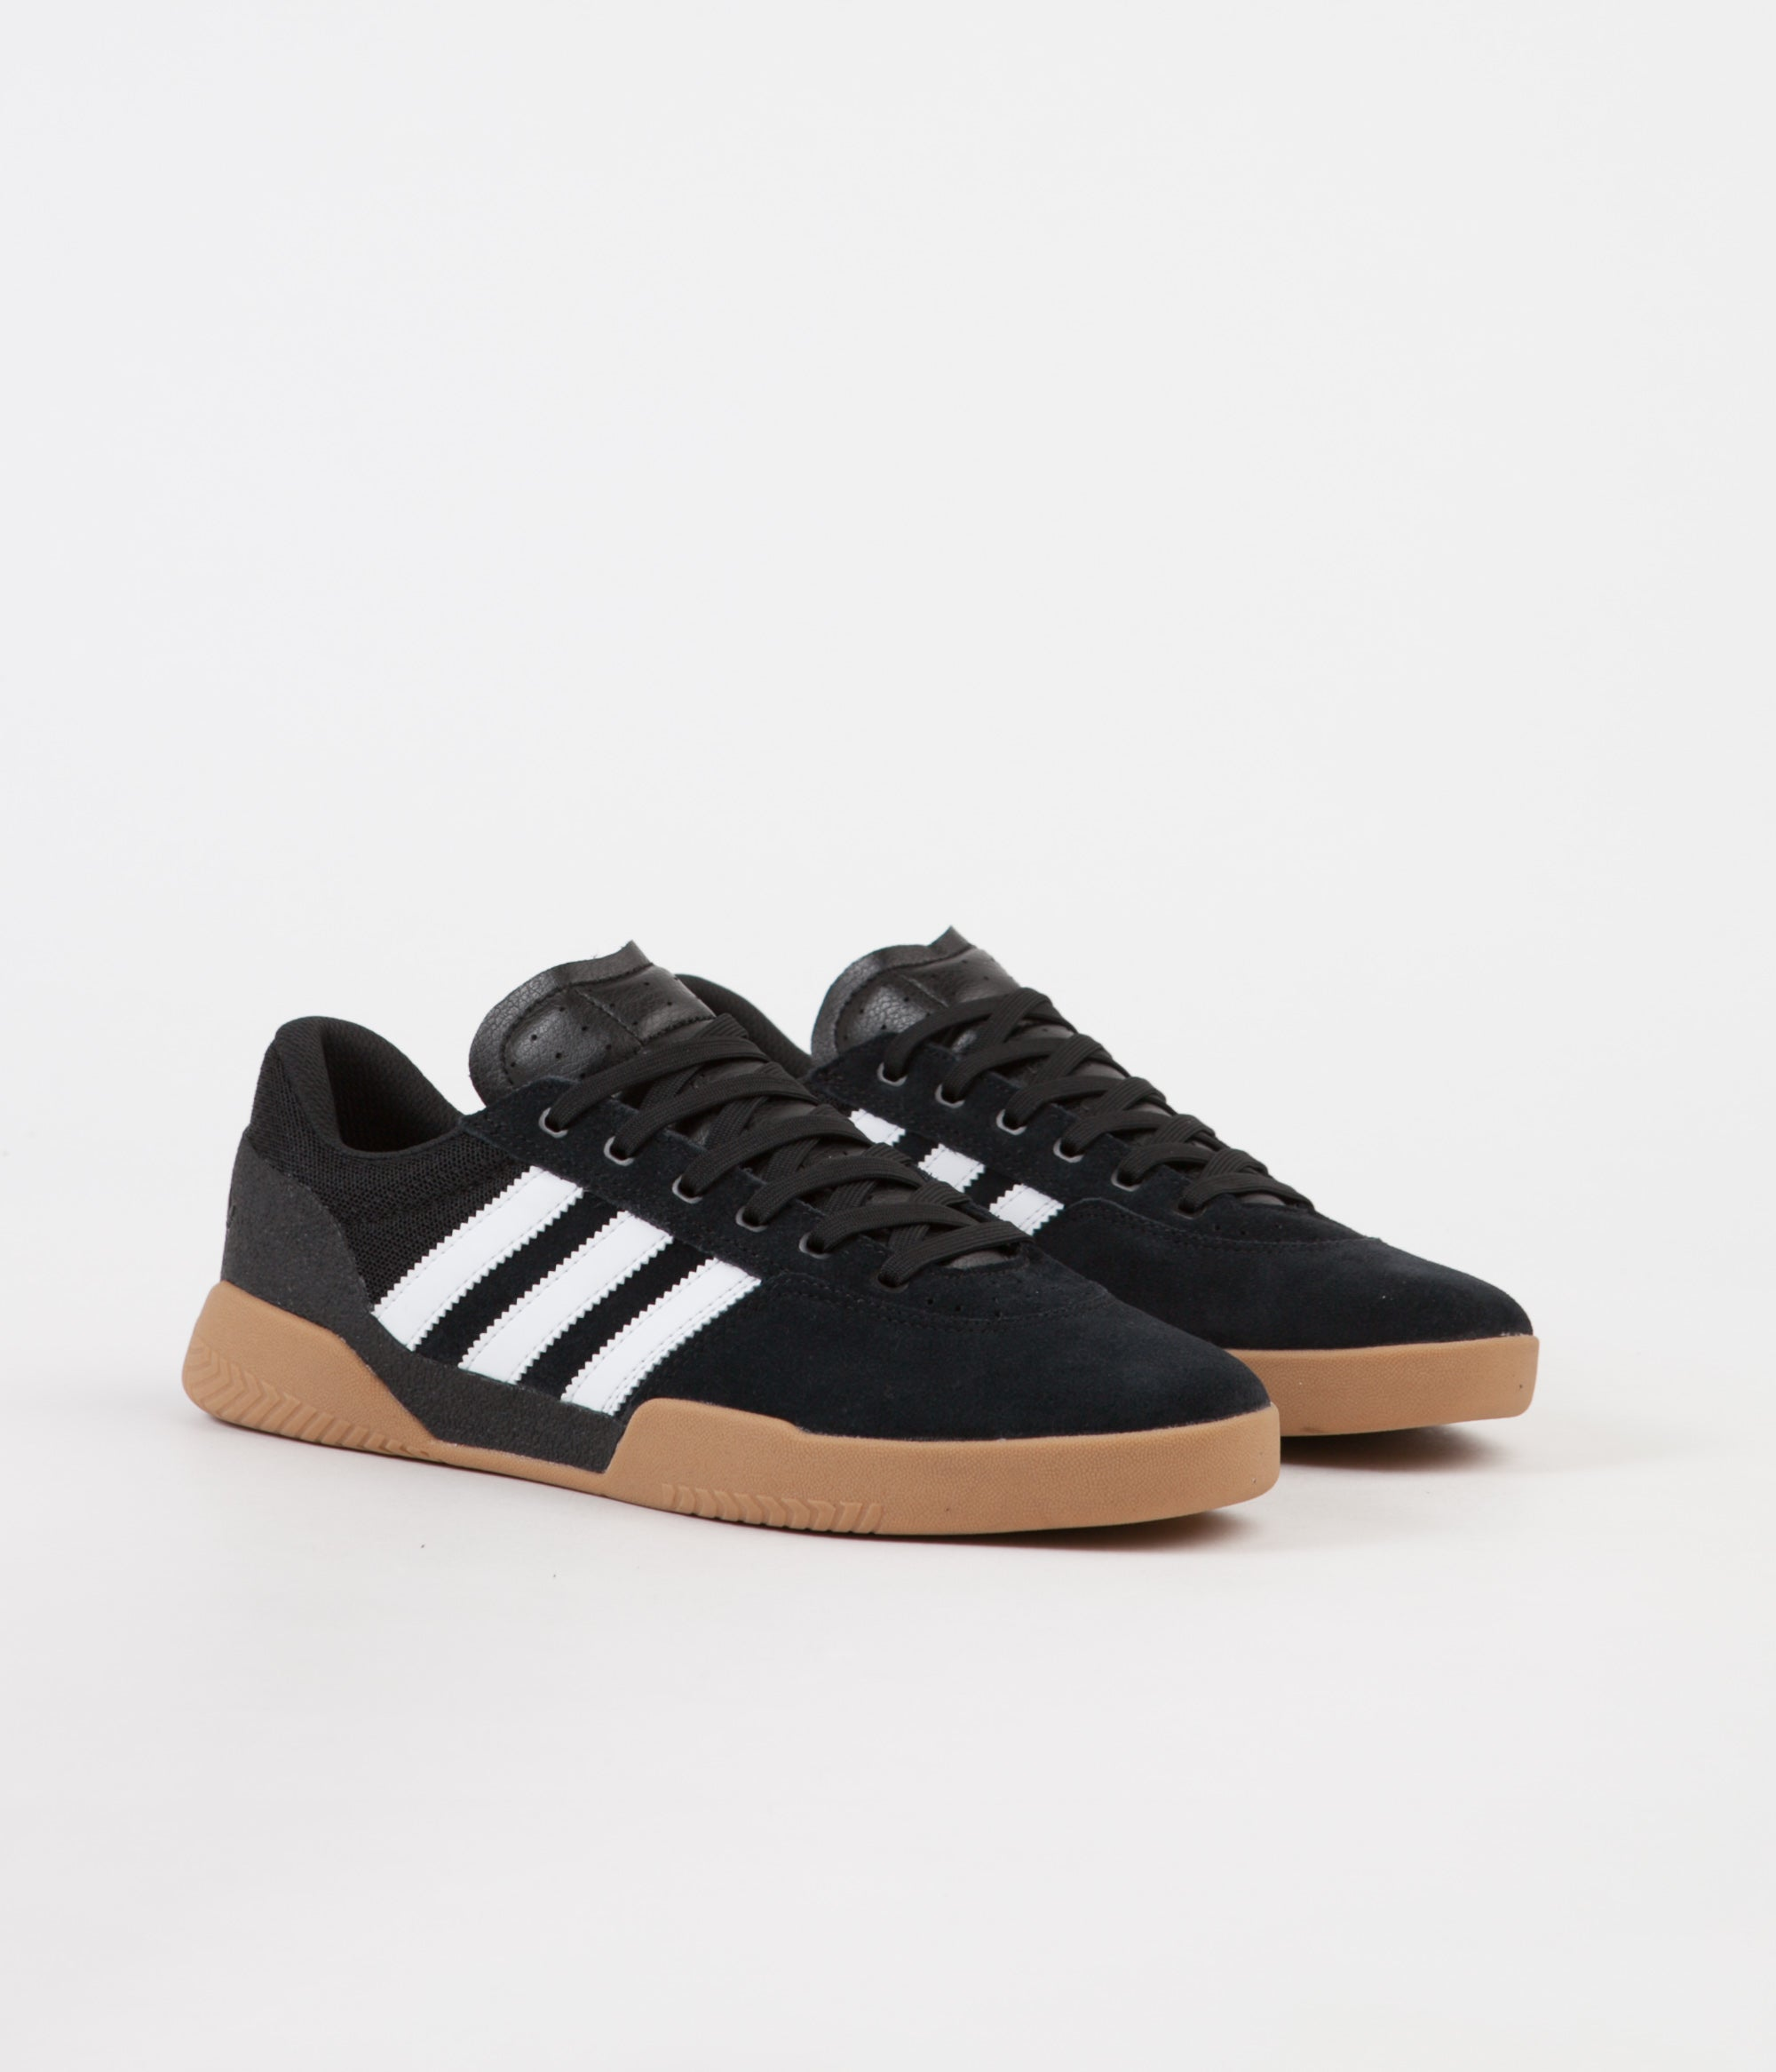 Adidas City Cup Shoes - Core Black / FTW White / Gum4